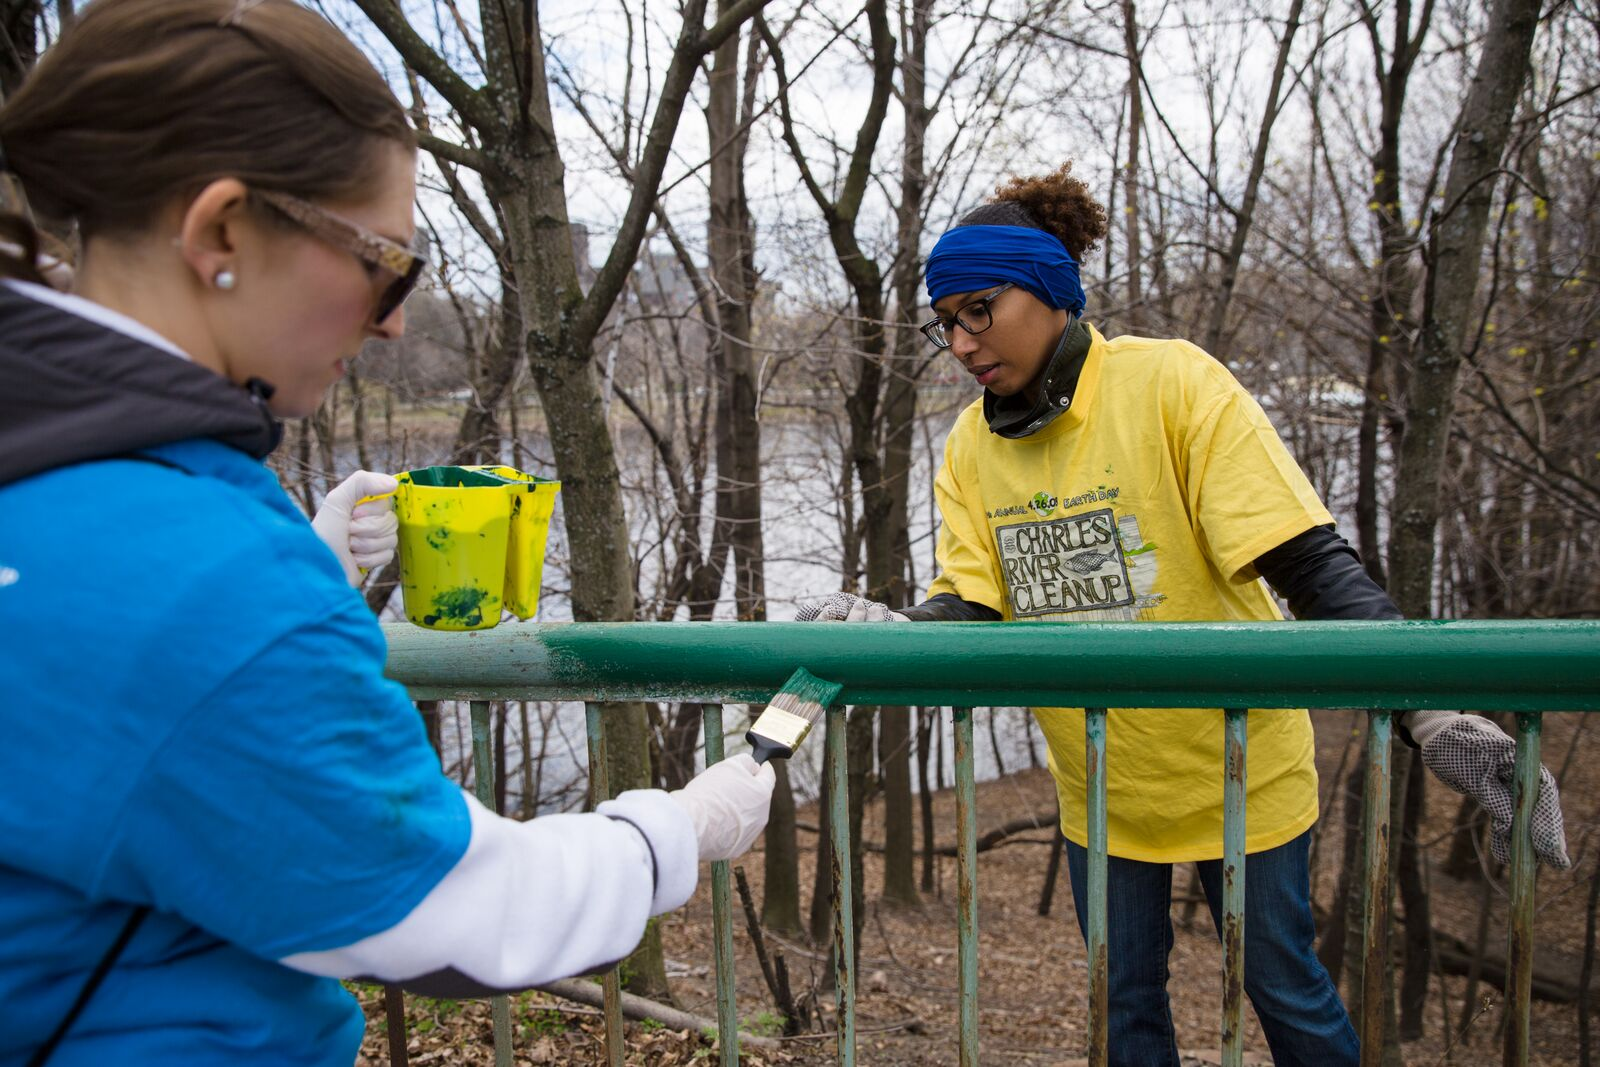 Volunteers painting a railing along the Charles River with the Charles River Cleanup crew